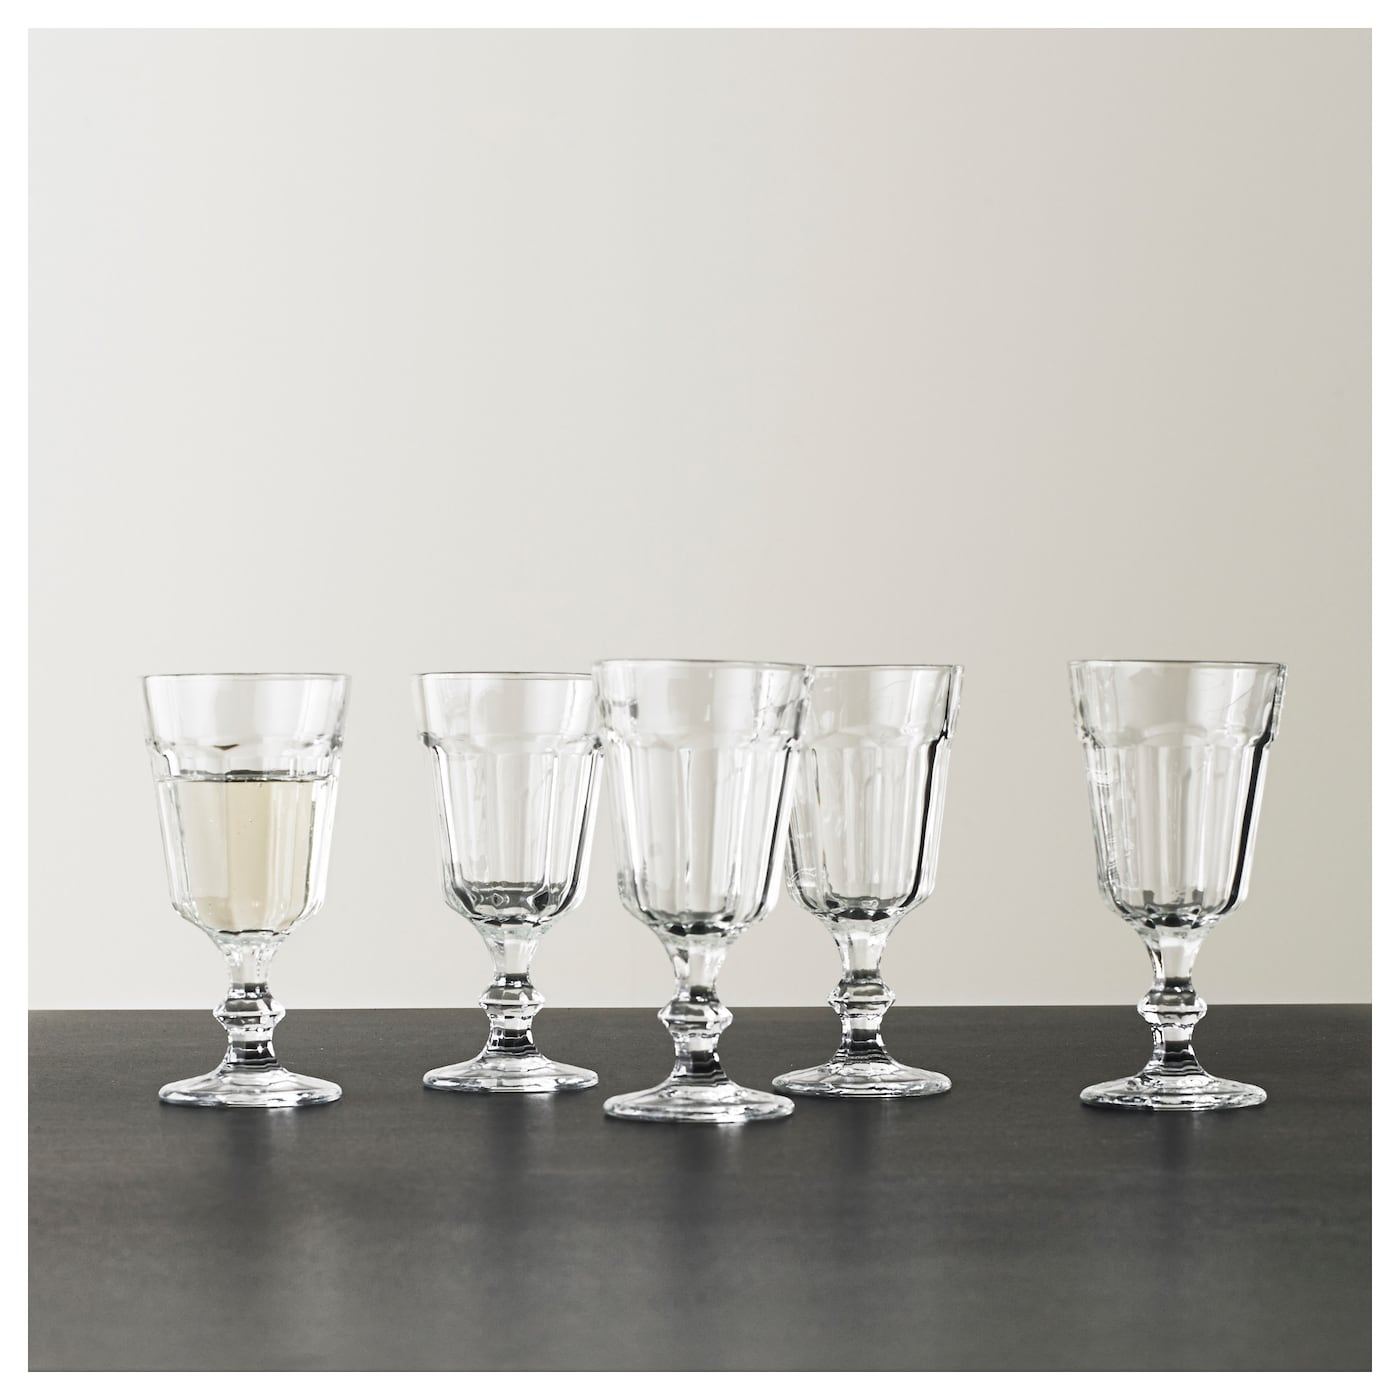 IKEA POKAL wine glass